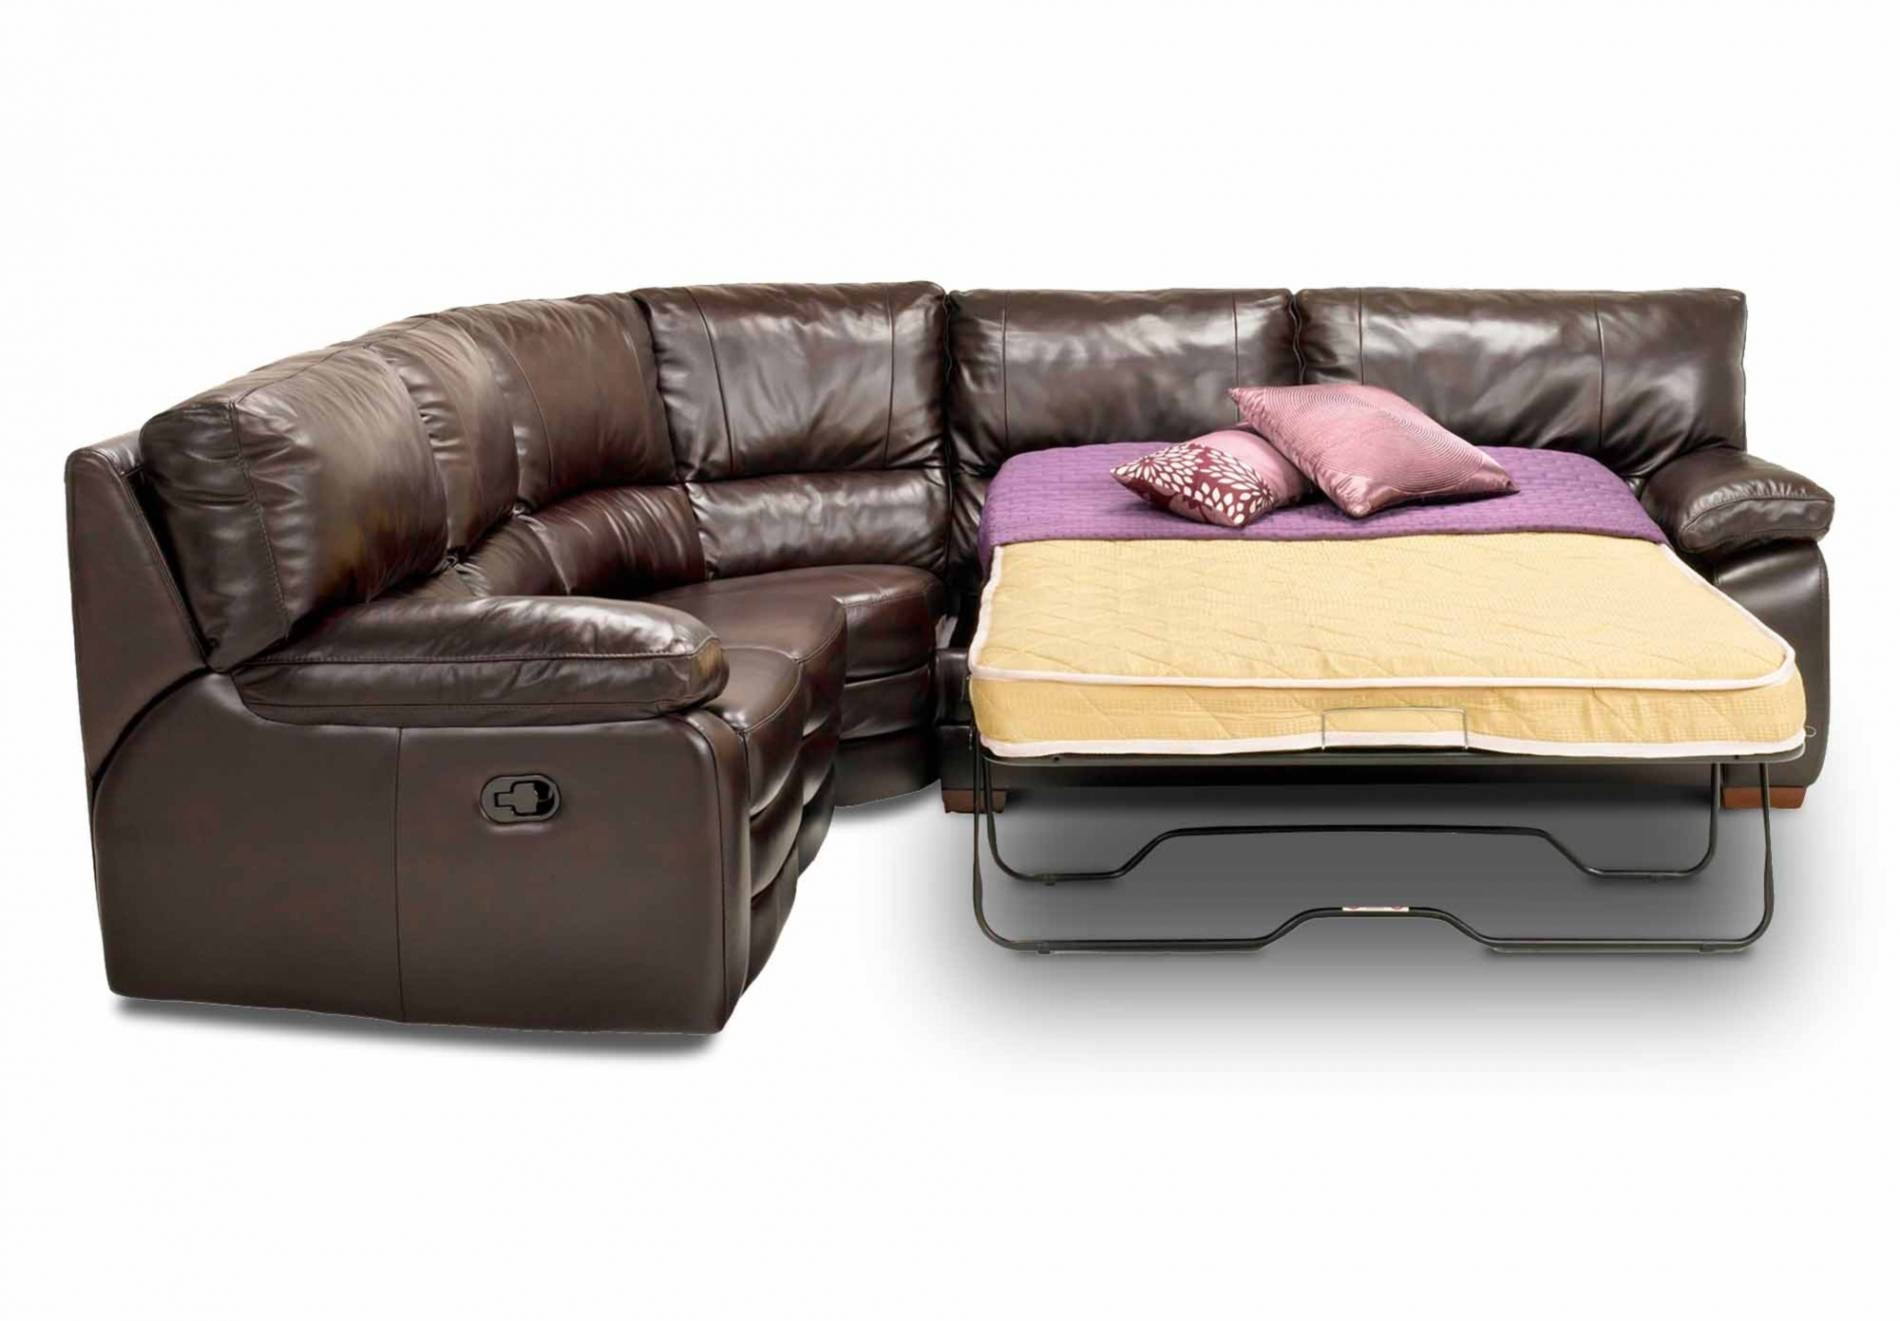 Image Of Best Leather Corner Sofa Bed Design – House And Living throughout Leather Corner Sofa Bed (Image 20 of 30)